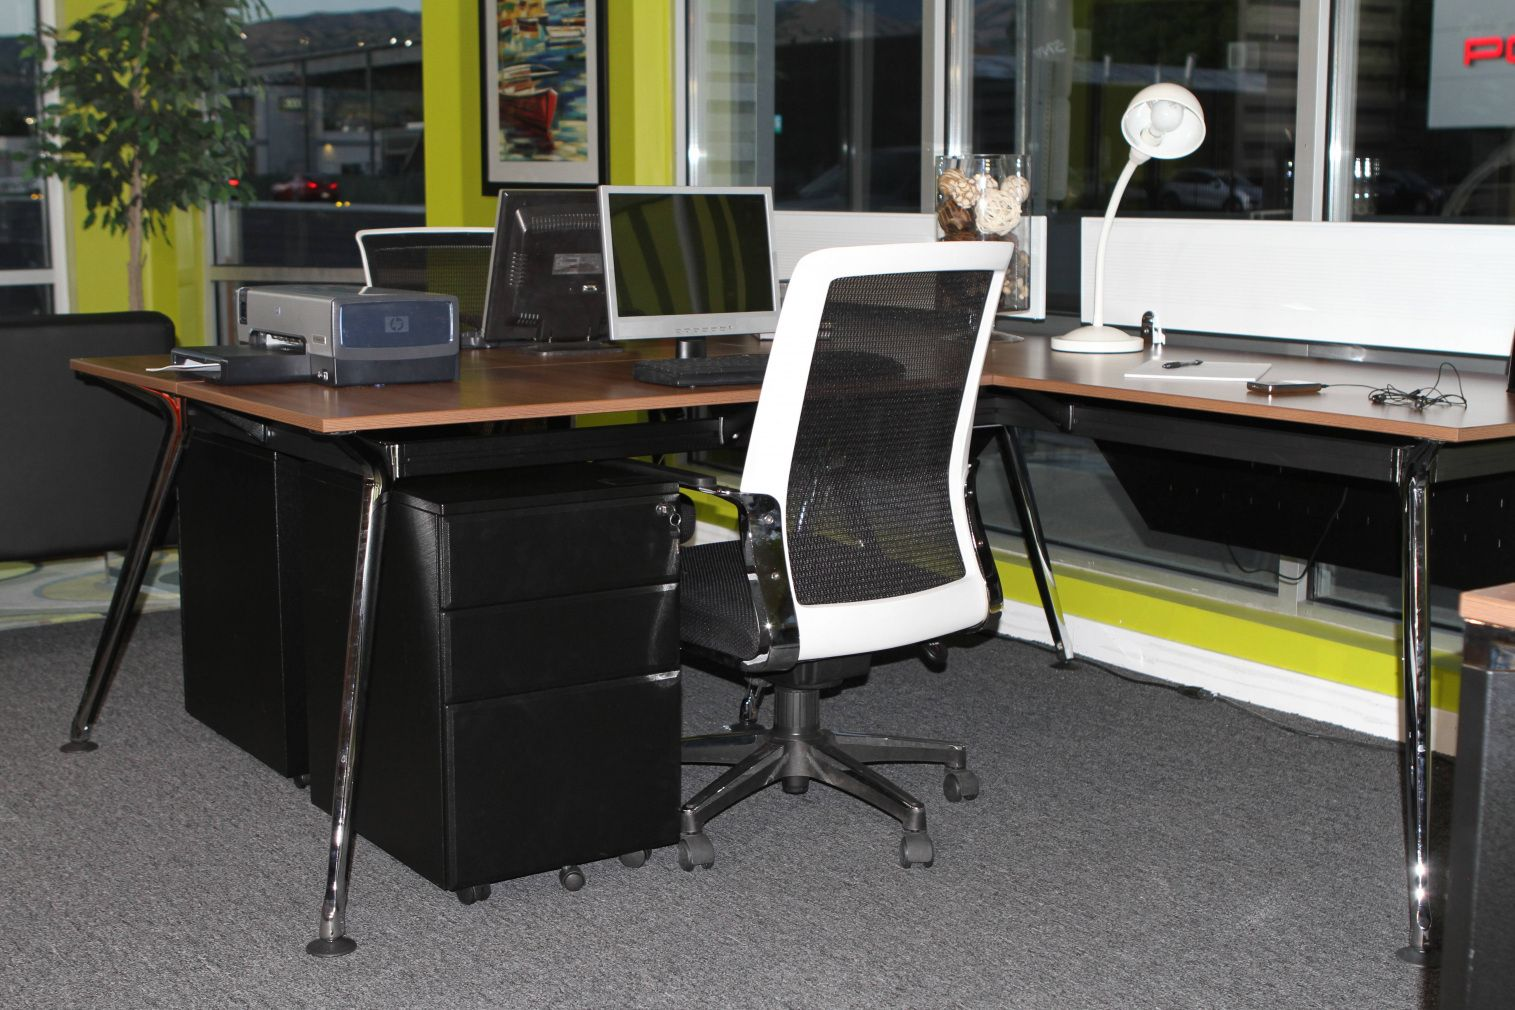 Exceptionnel Office Desk Las Vegas   Ashley Furniture Home Office Check More At Http://